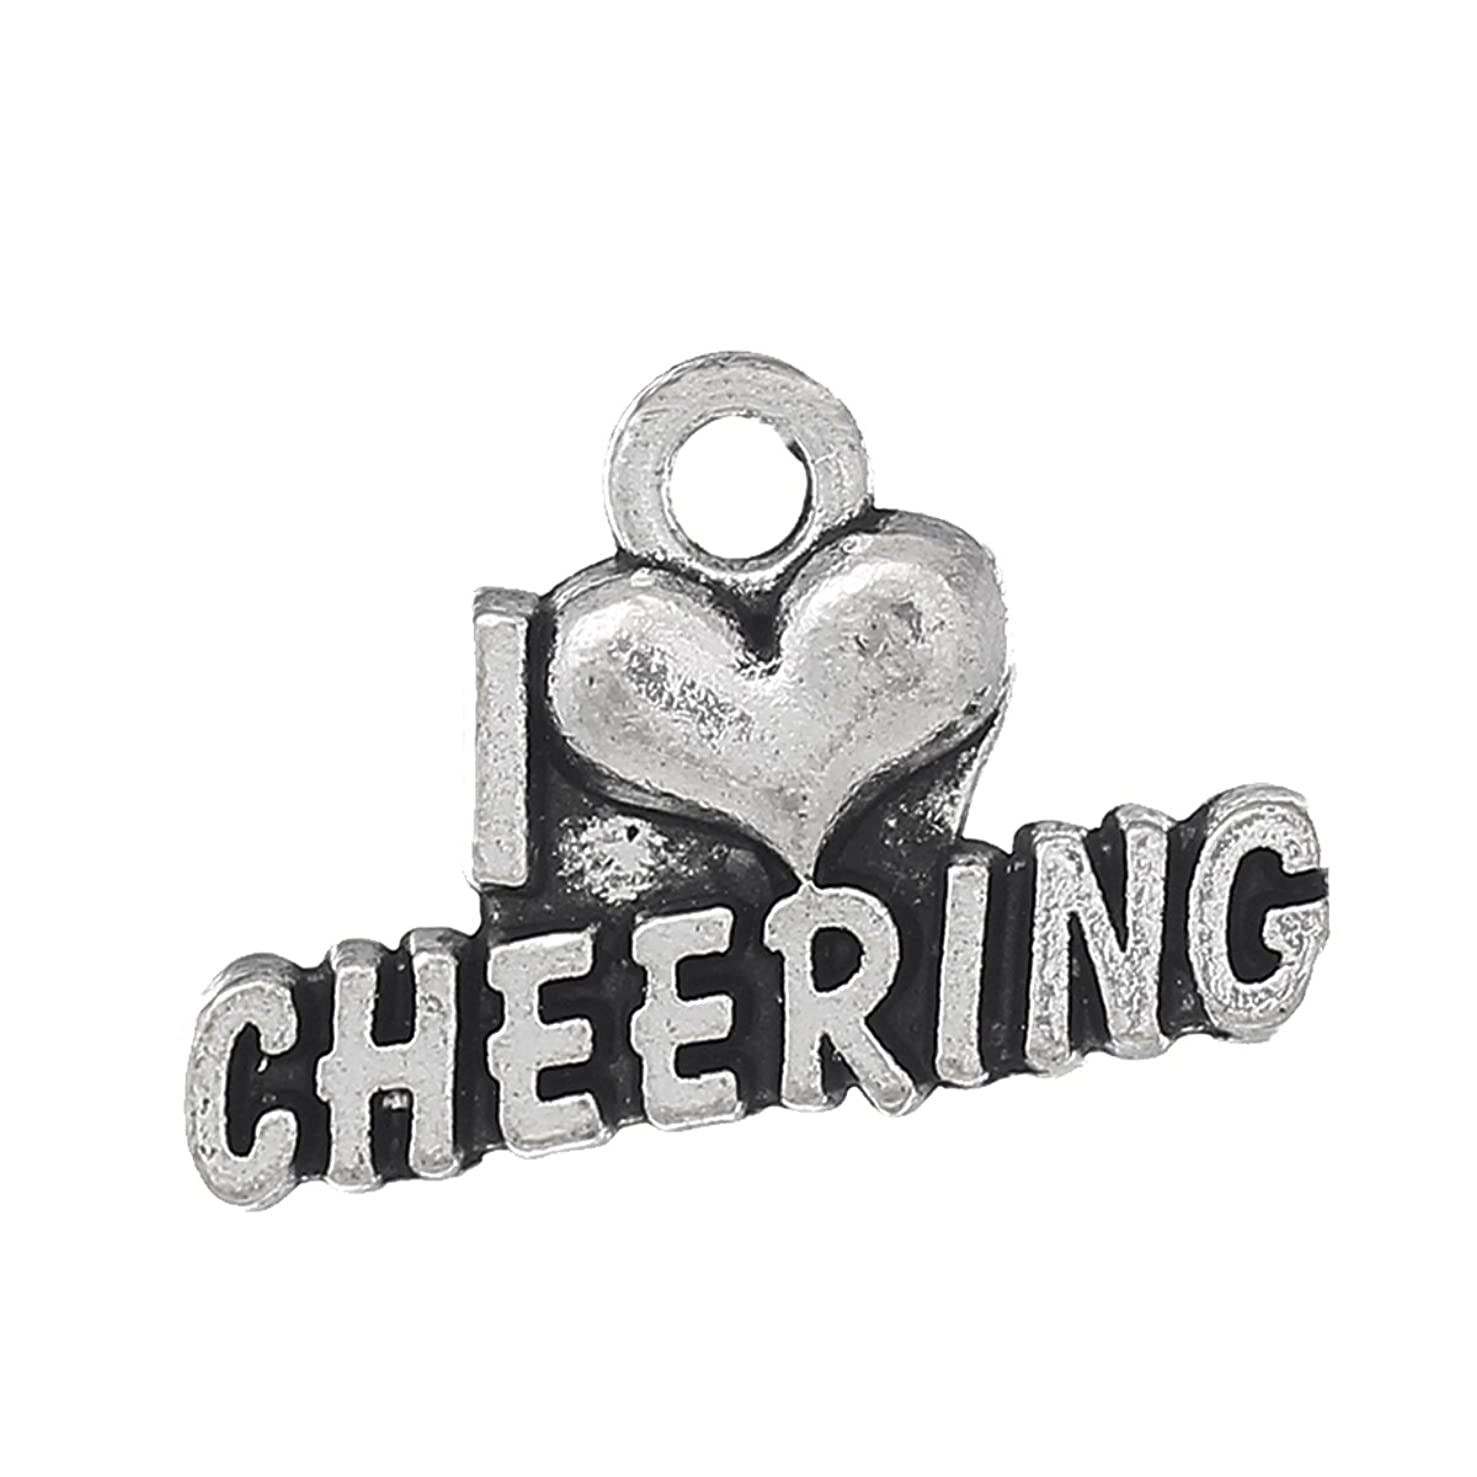 Cheerleading - Cheer and School Spirit Silver Tone Charms (30 Pc Cheering)